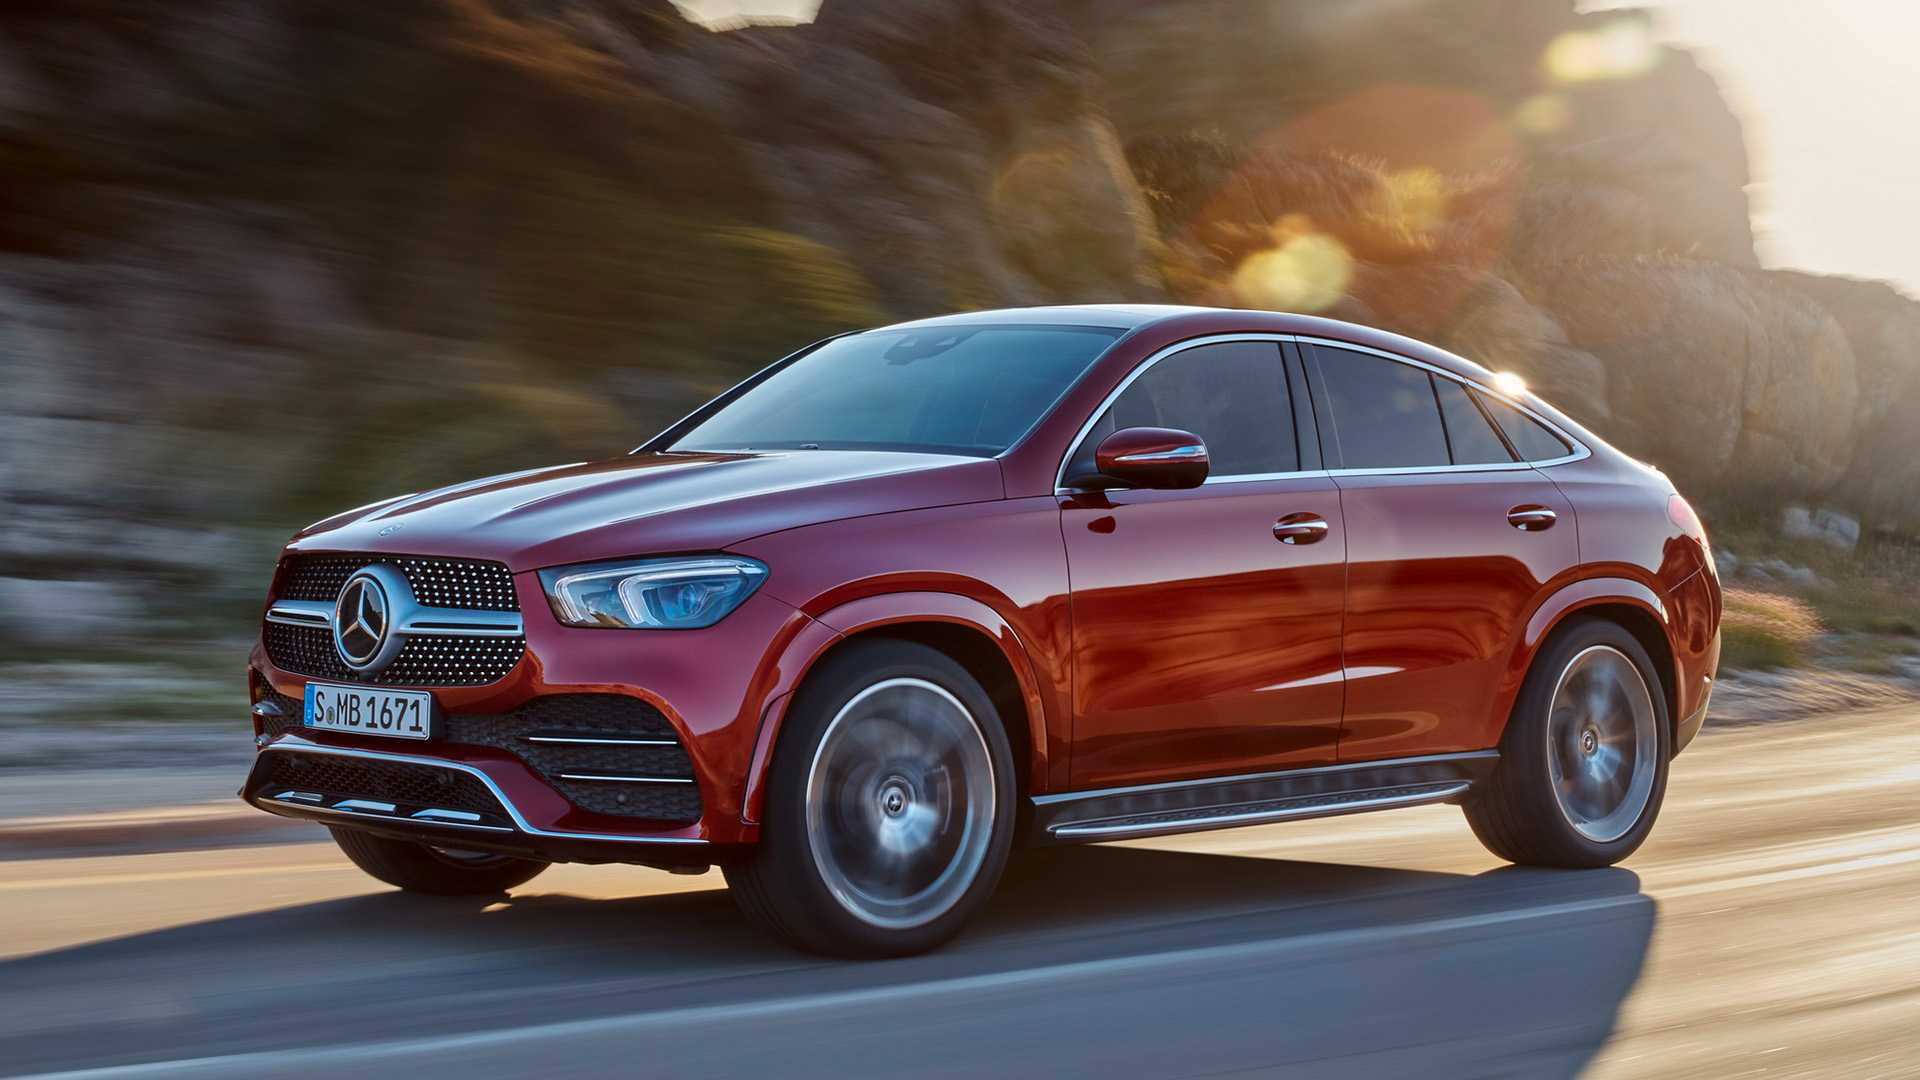 2021 Mercedes-Benz GLE Coupe (Color: Designo Hyacinth Red Metallic) Front Three-Quarter Wallpapers (4)